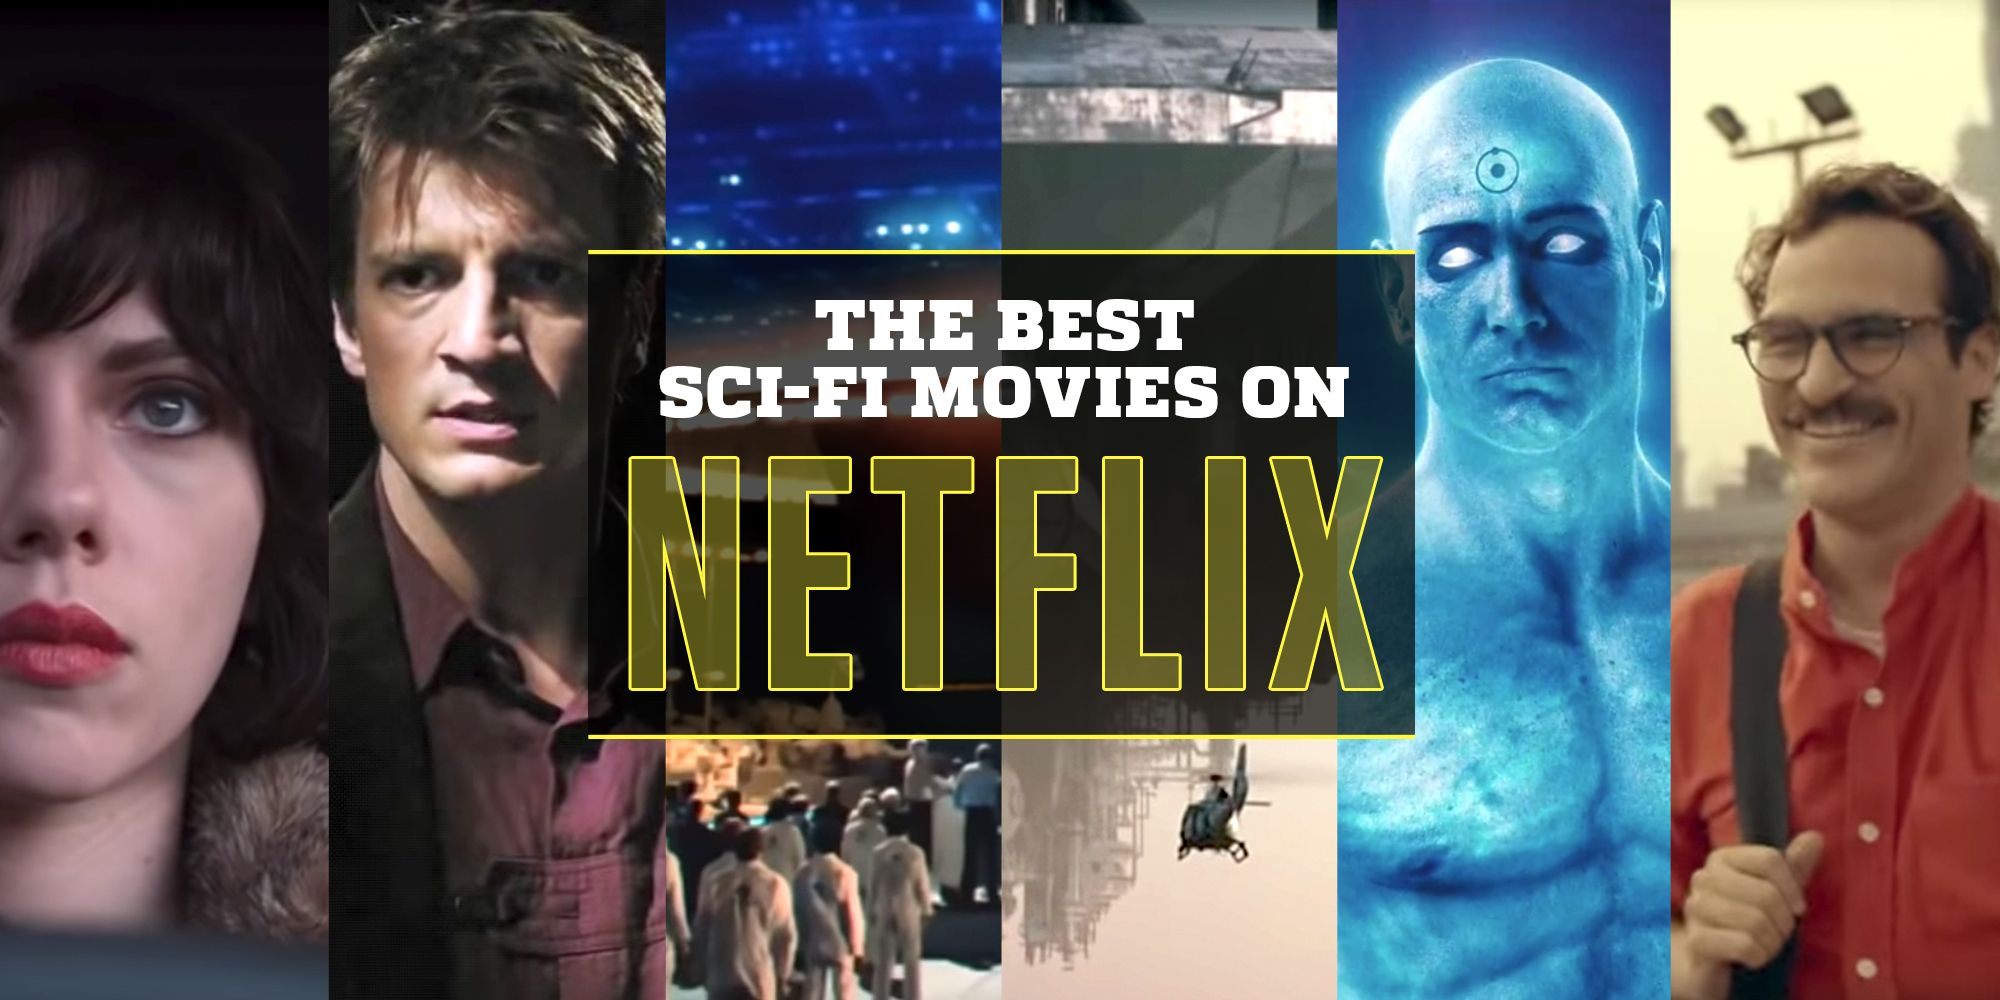 The 25 Best Sci-Fi Movies on Netflix Right Now